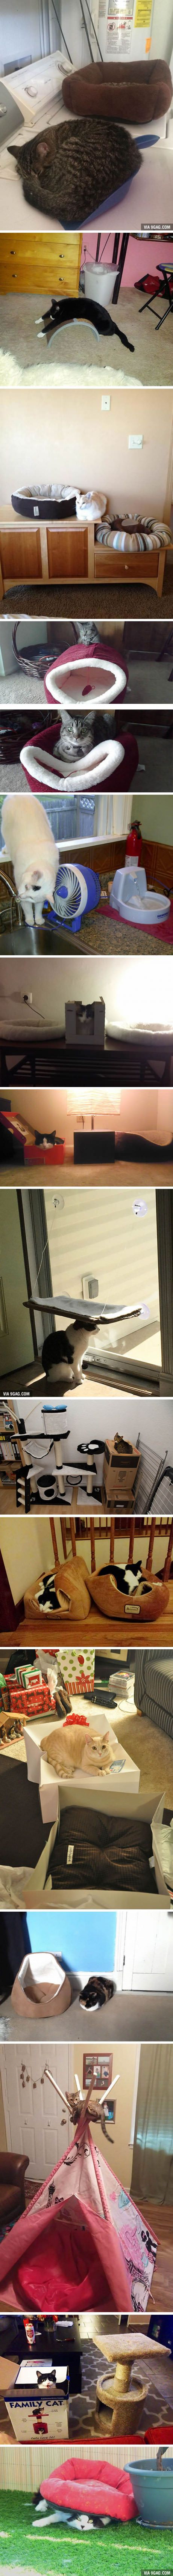 """Cats that are """"truly thankful"""" for your gifts..."""